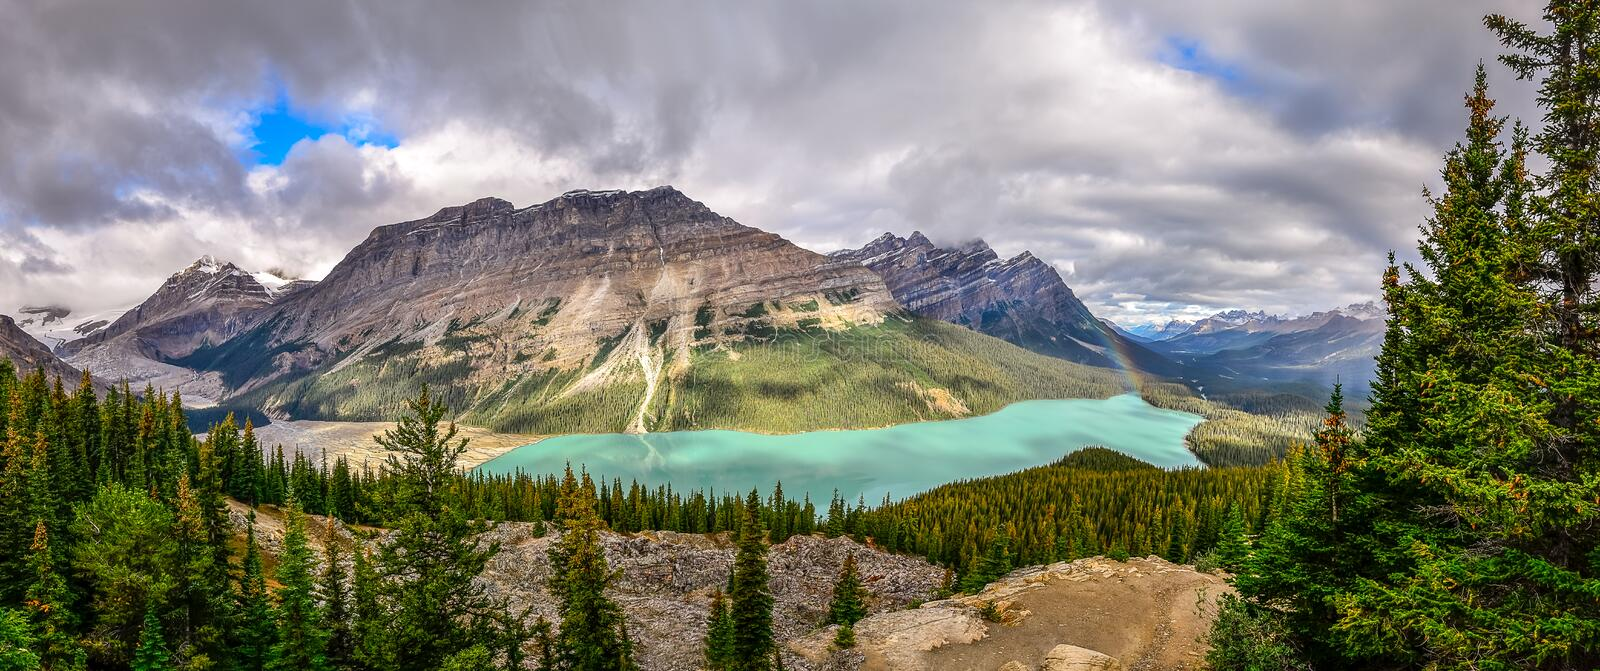 Panoramic view of Peyto lake and Rocky mountains, Canada royalty free stock images